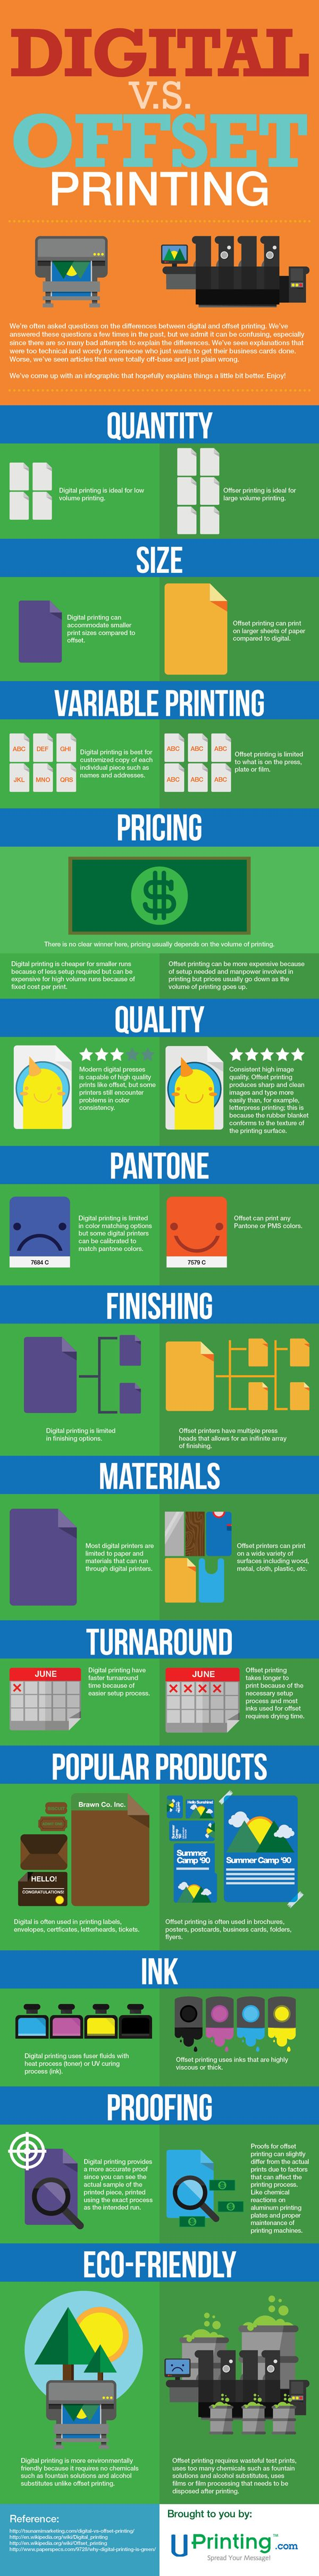 digital vs offset printing infographic by uprinting